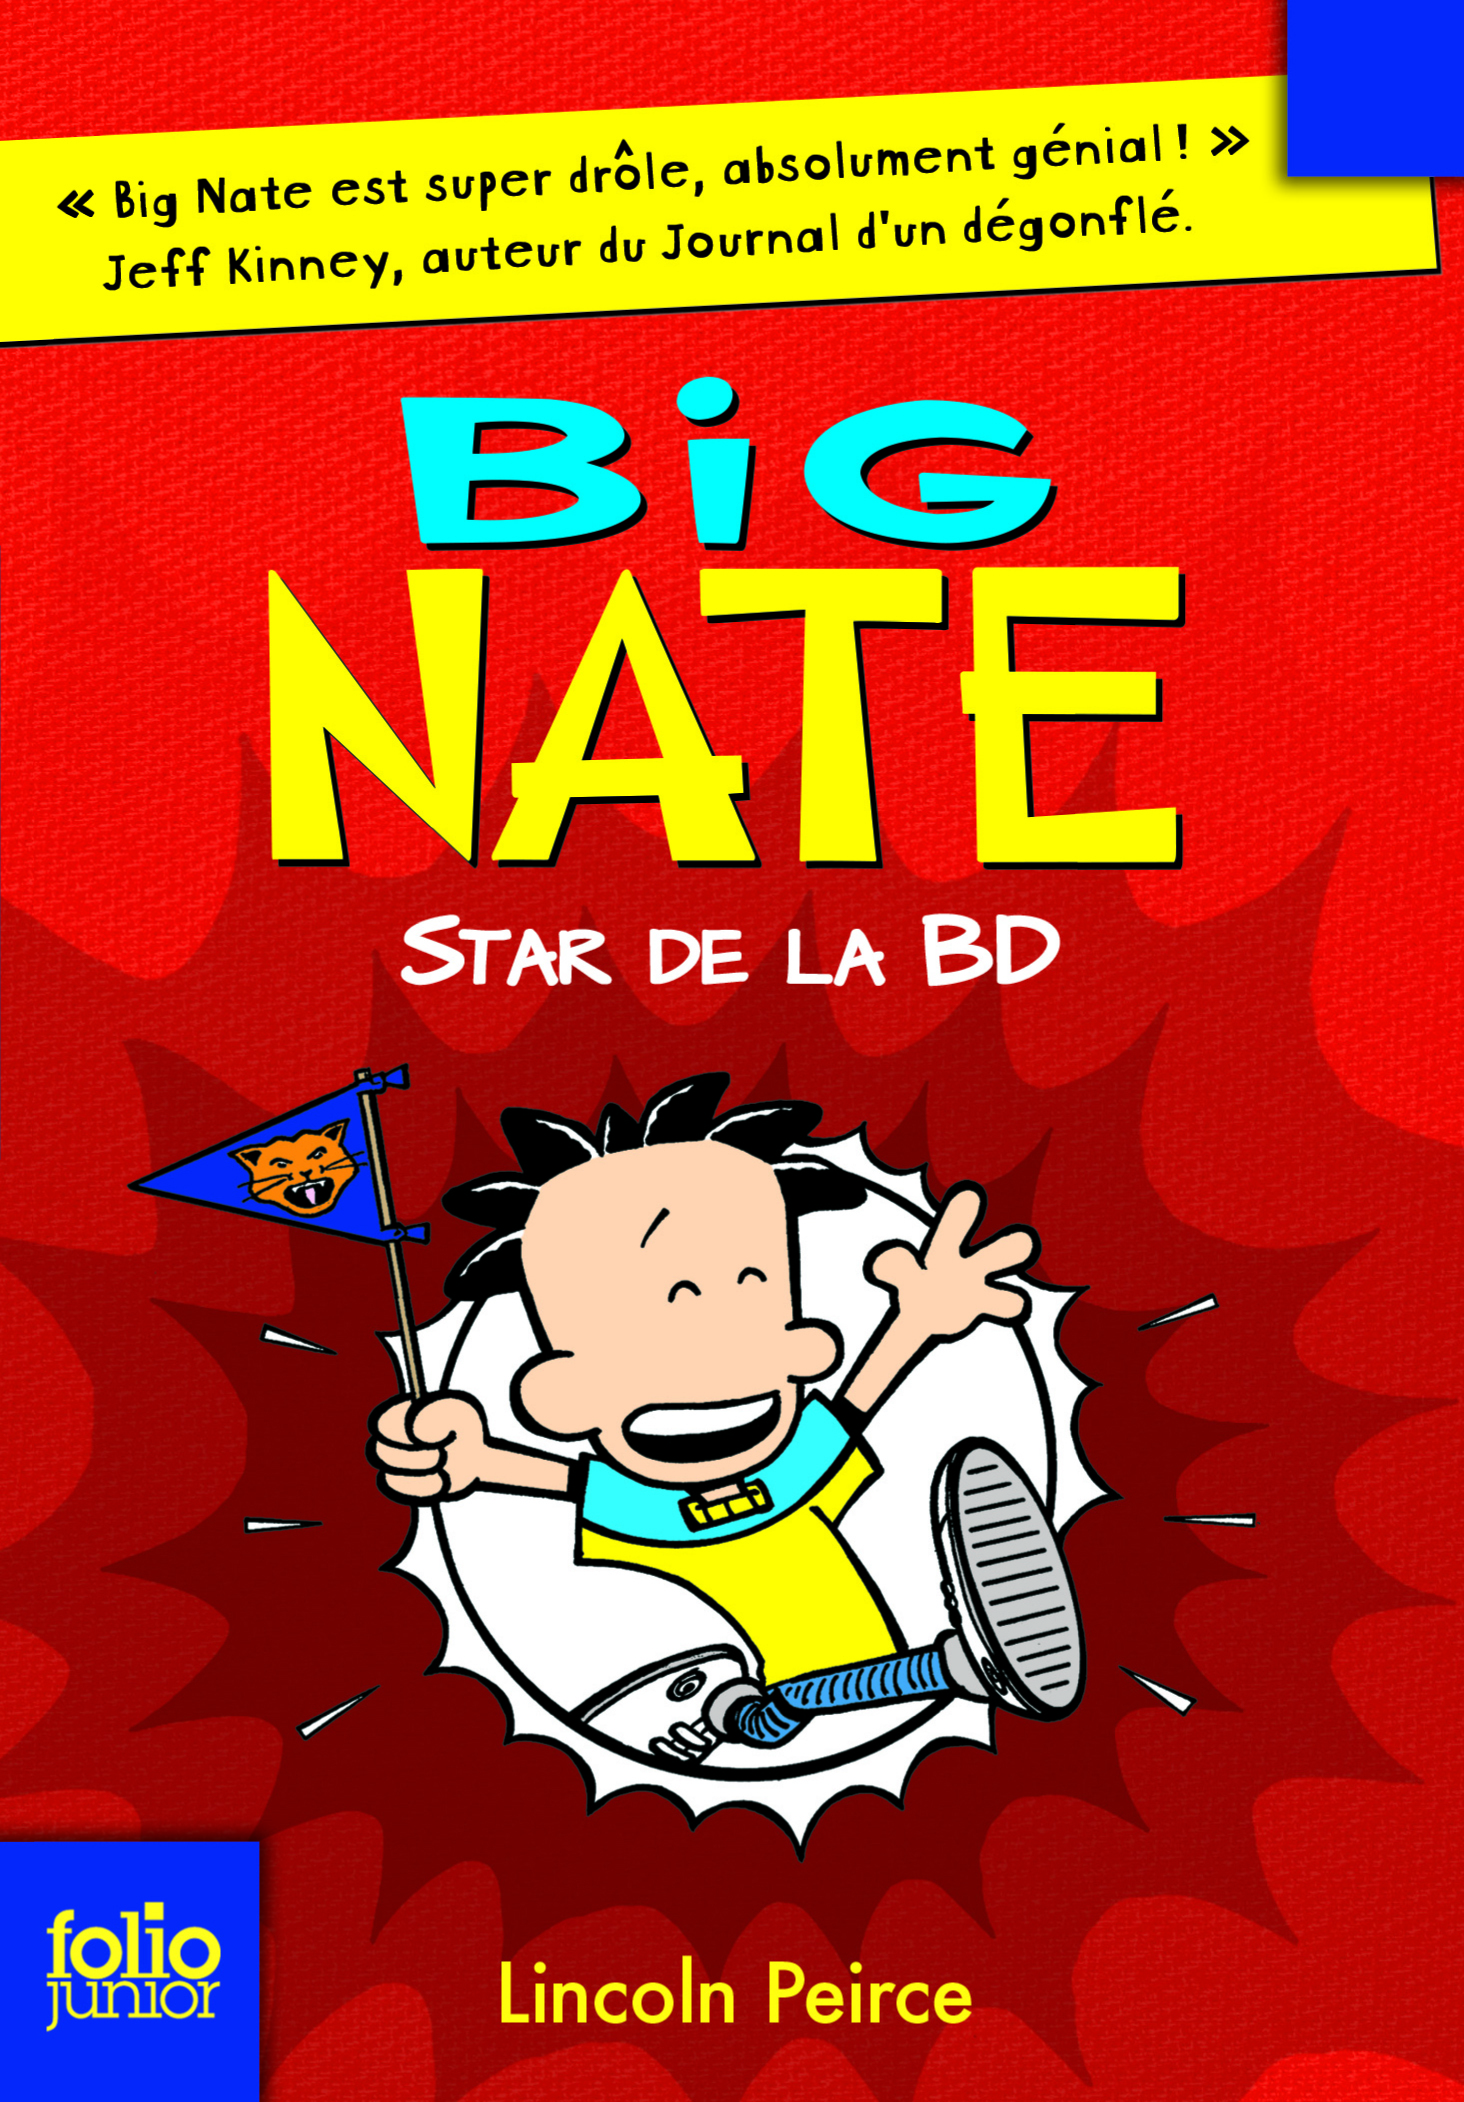 BIG NATE STAR DE LA BD